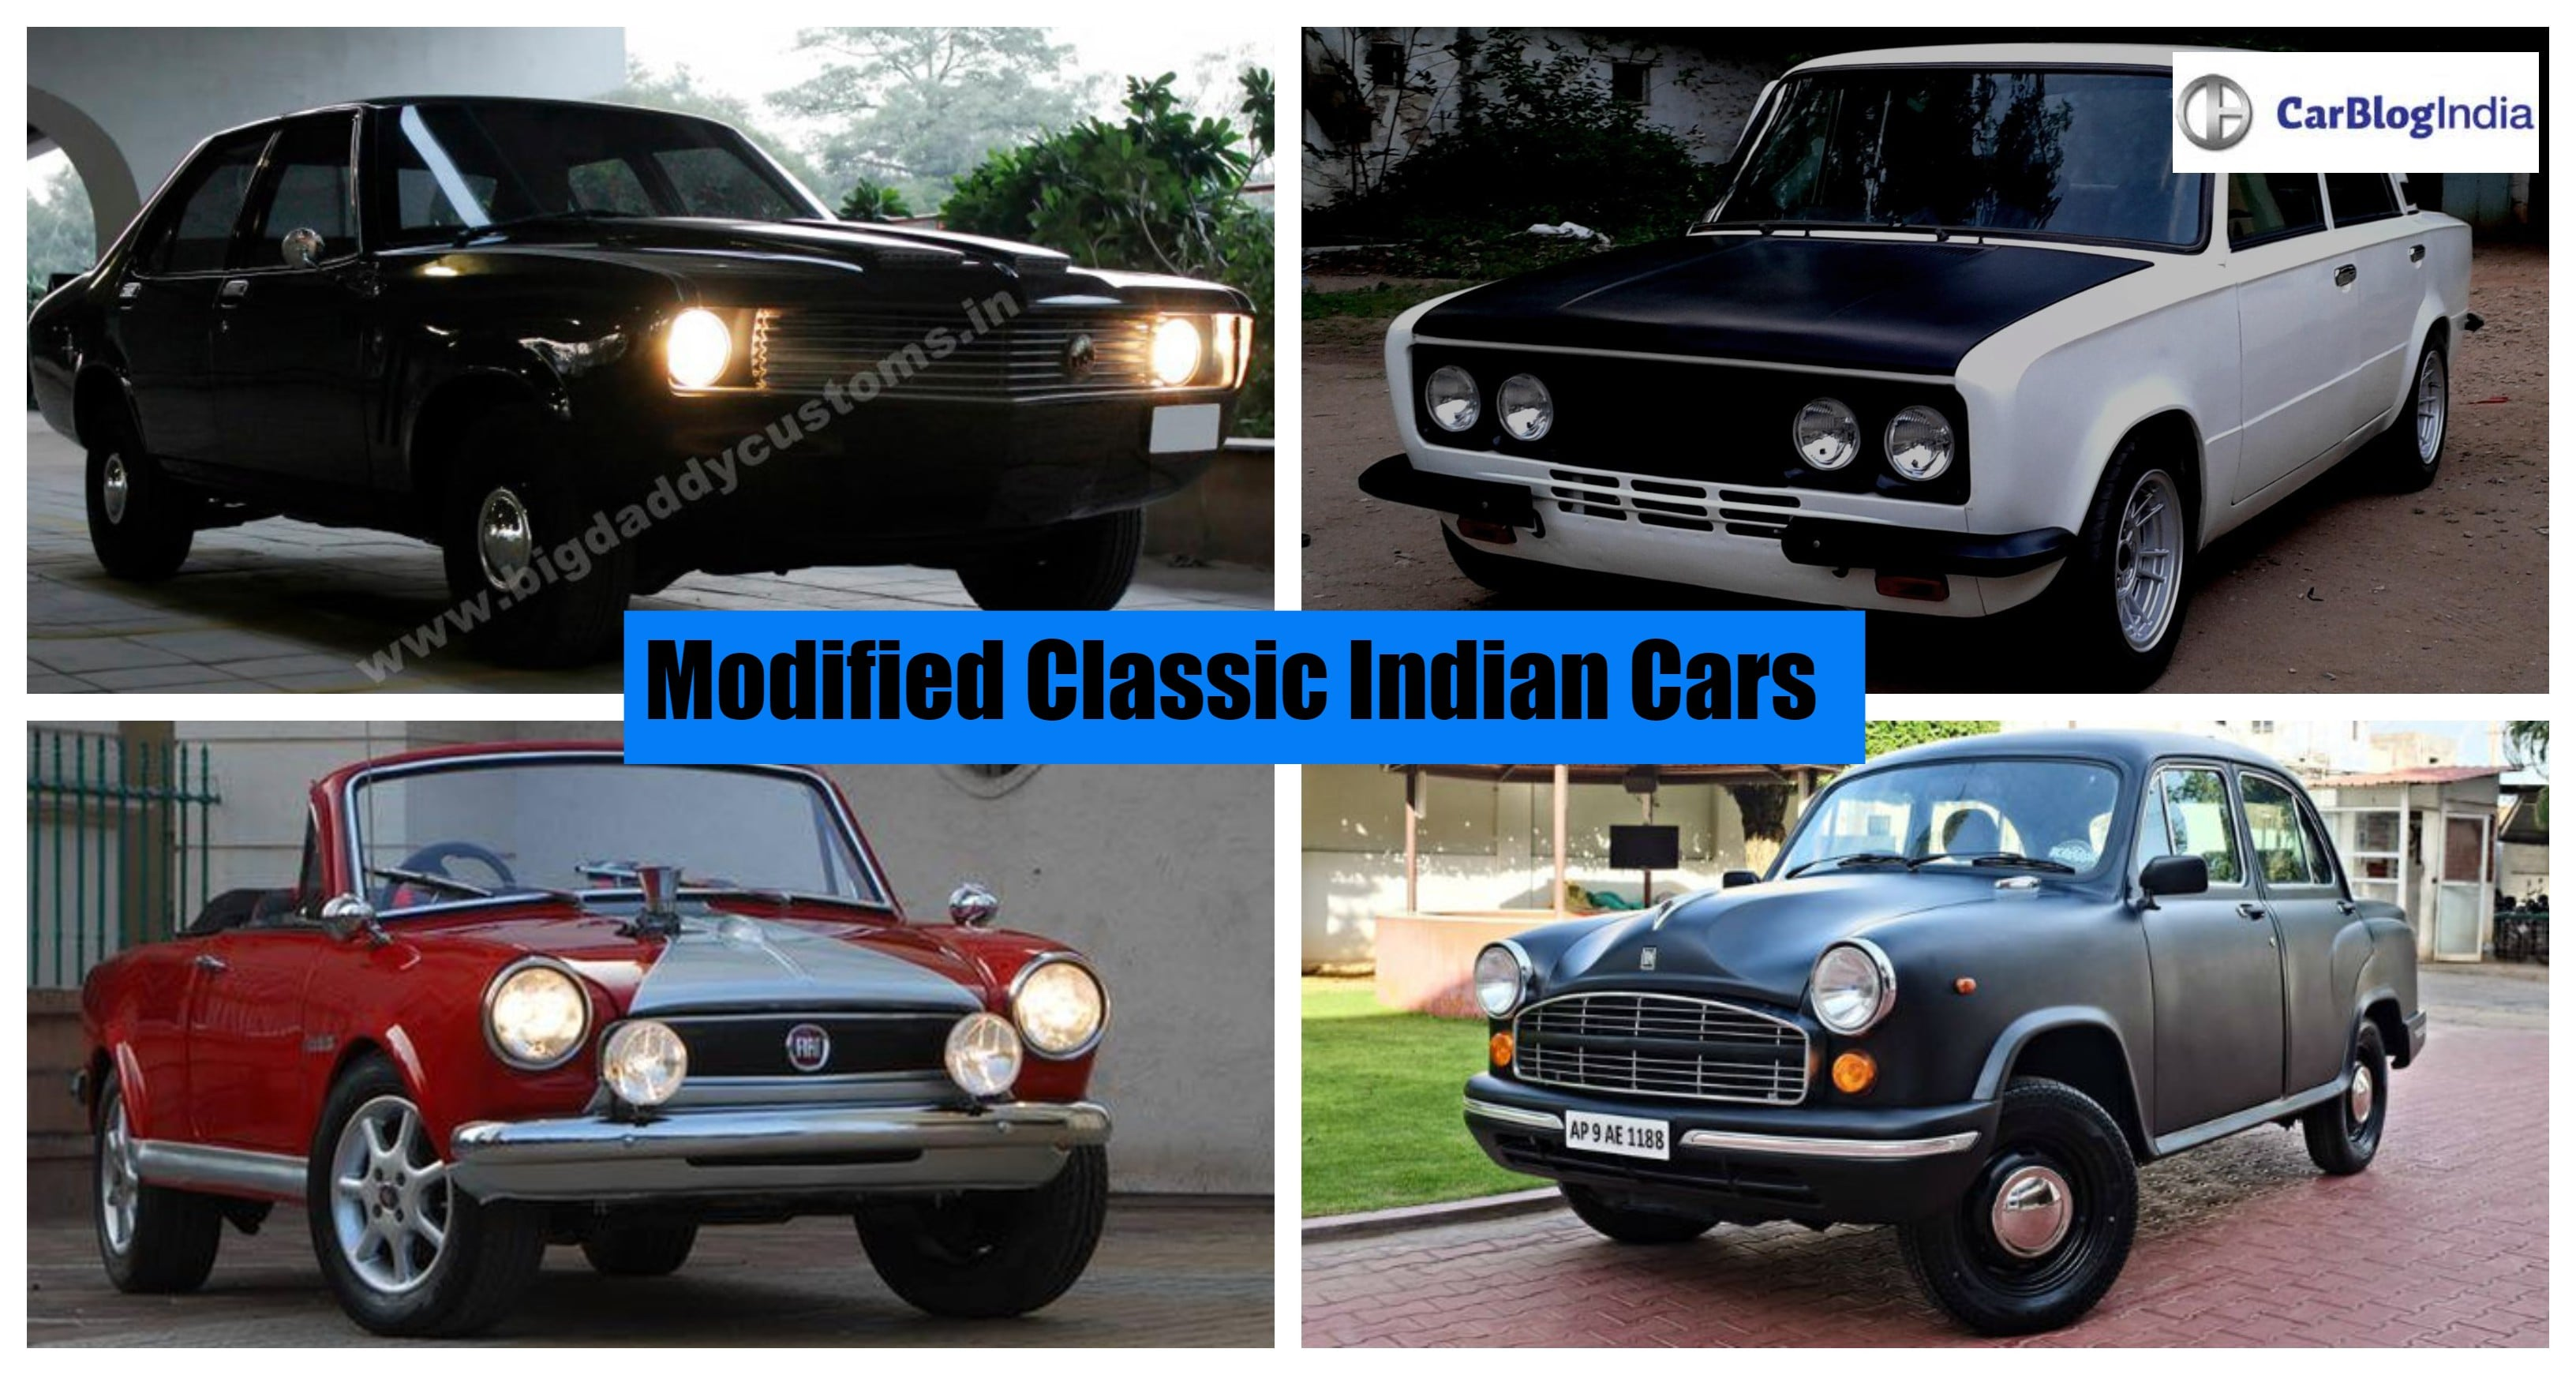 Modified classic Indian cars- Contessa, Ambassador, Padmini